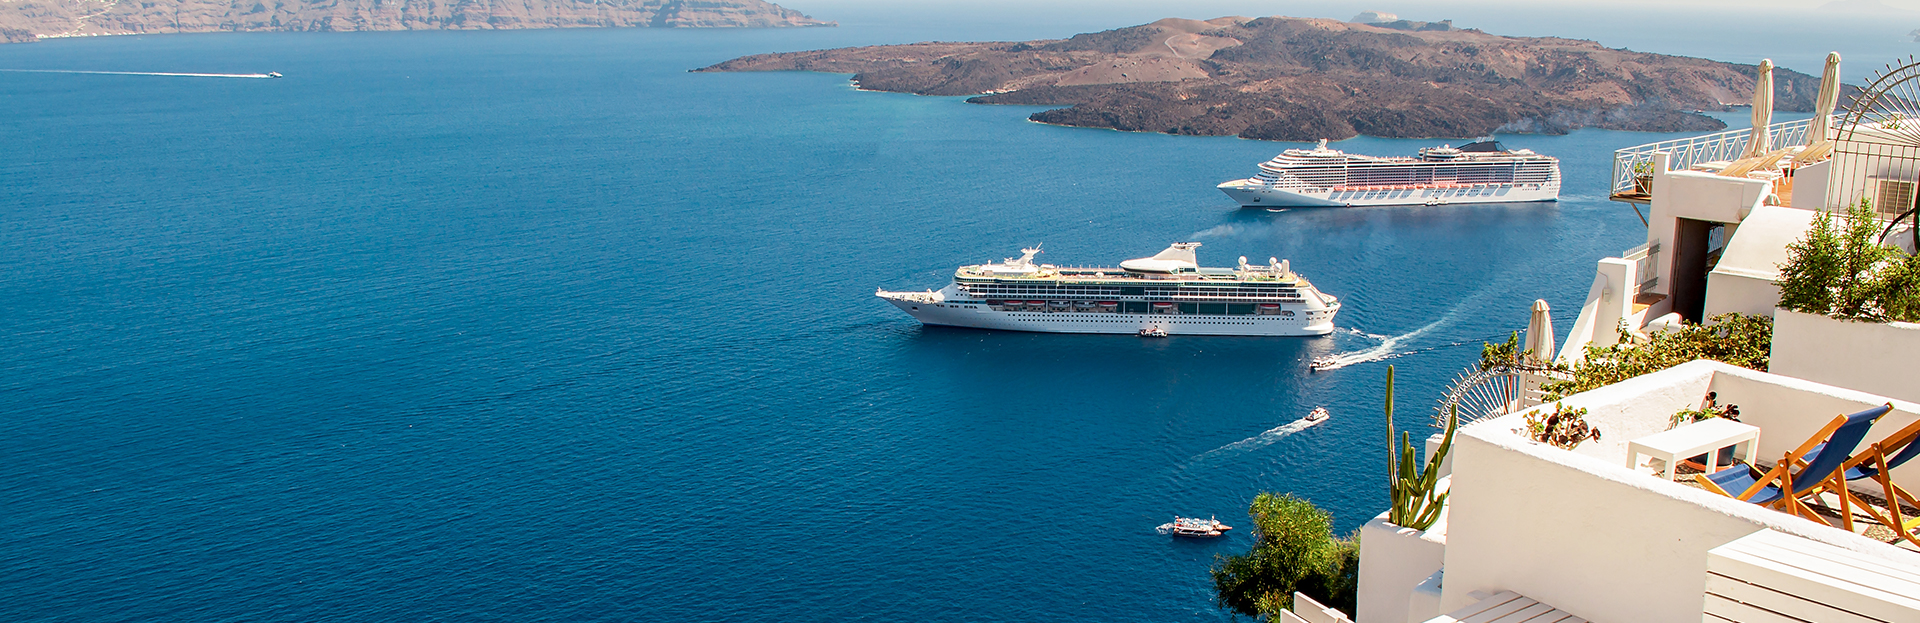 Cruises from Greece with Flights from Toronto